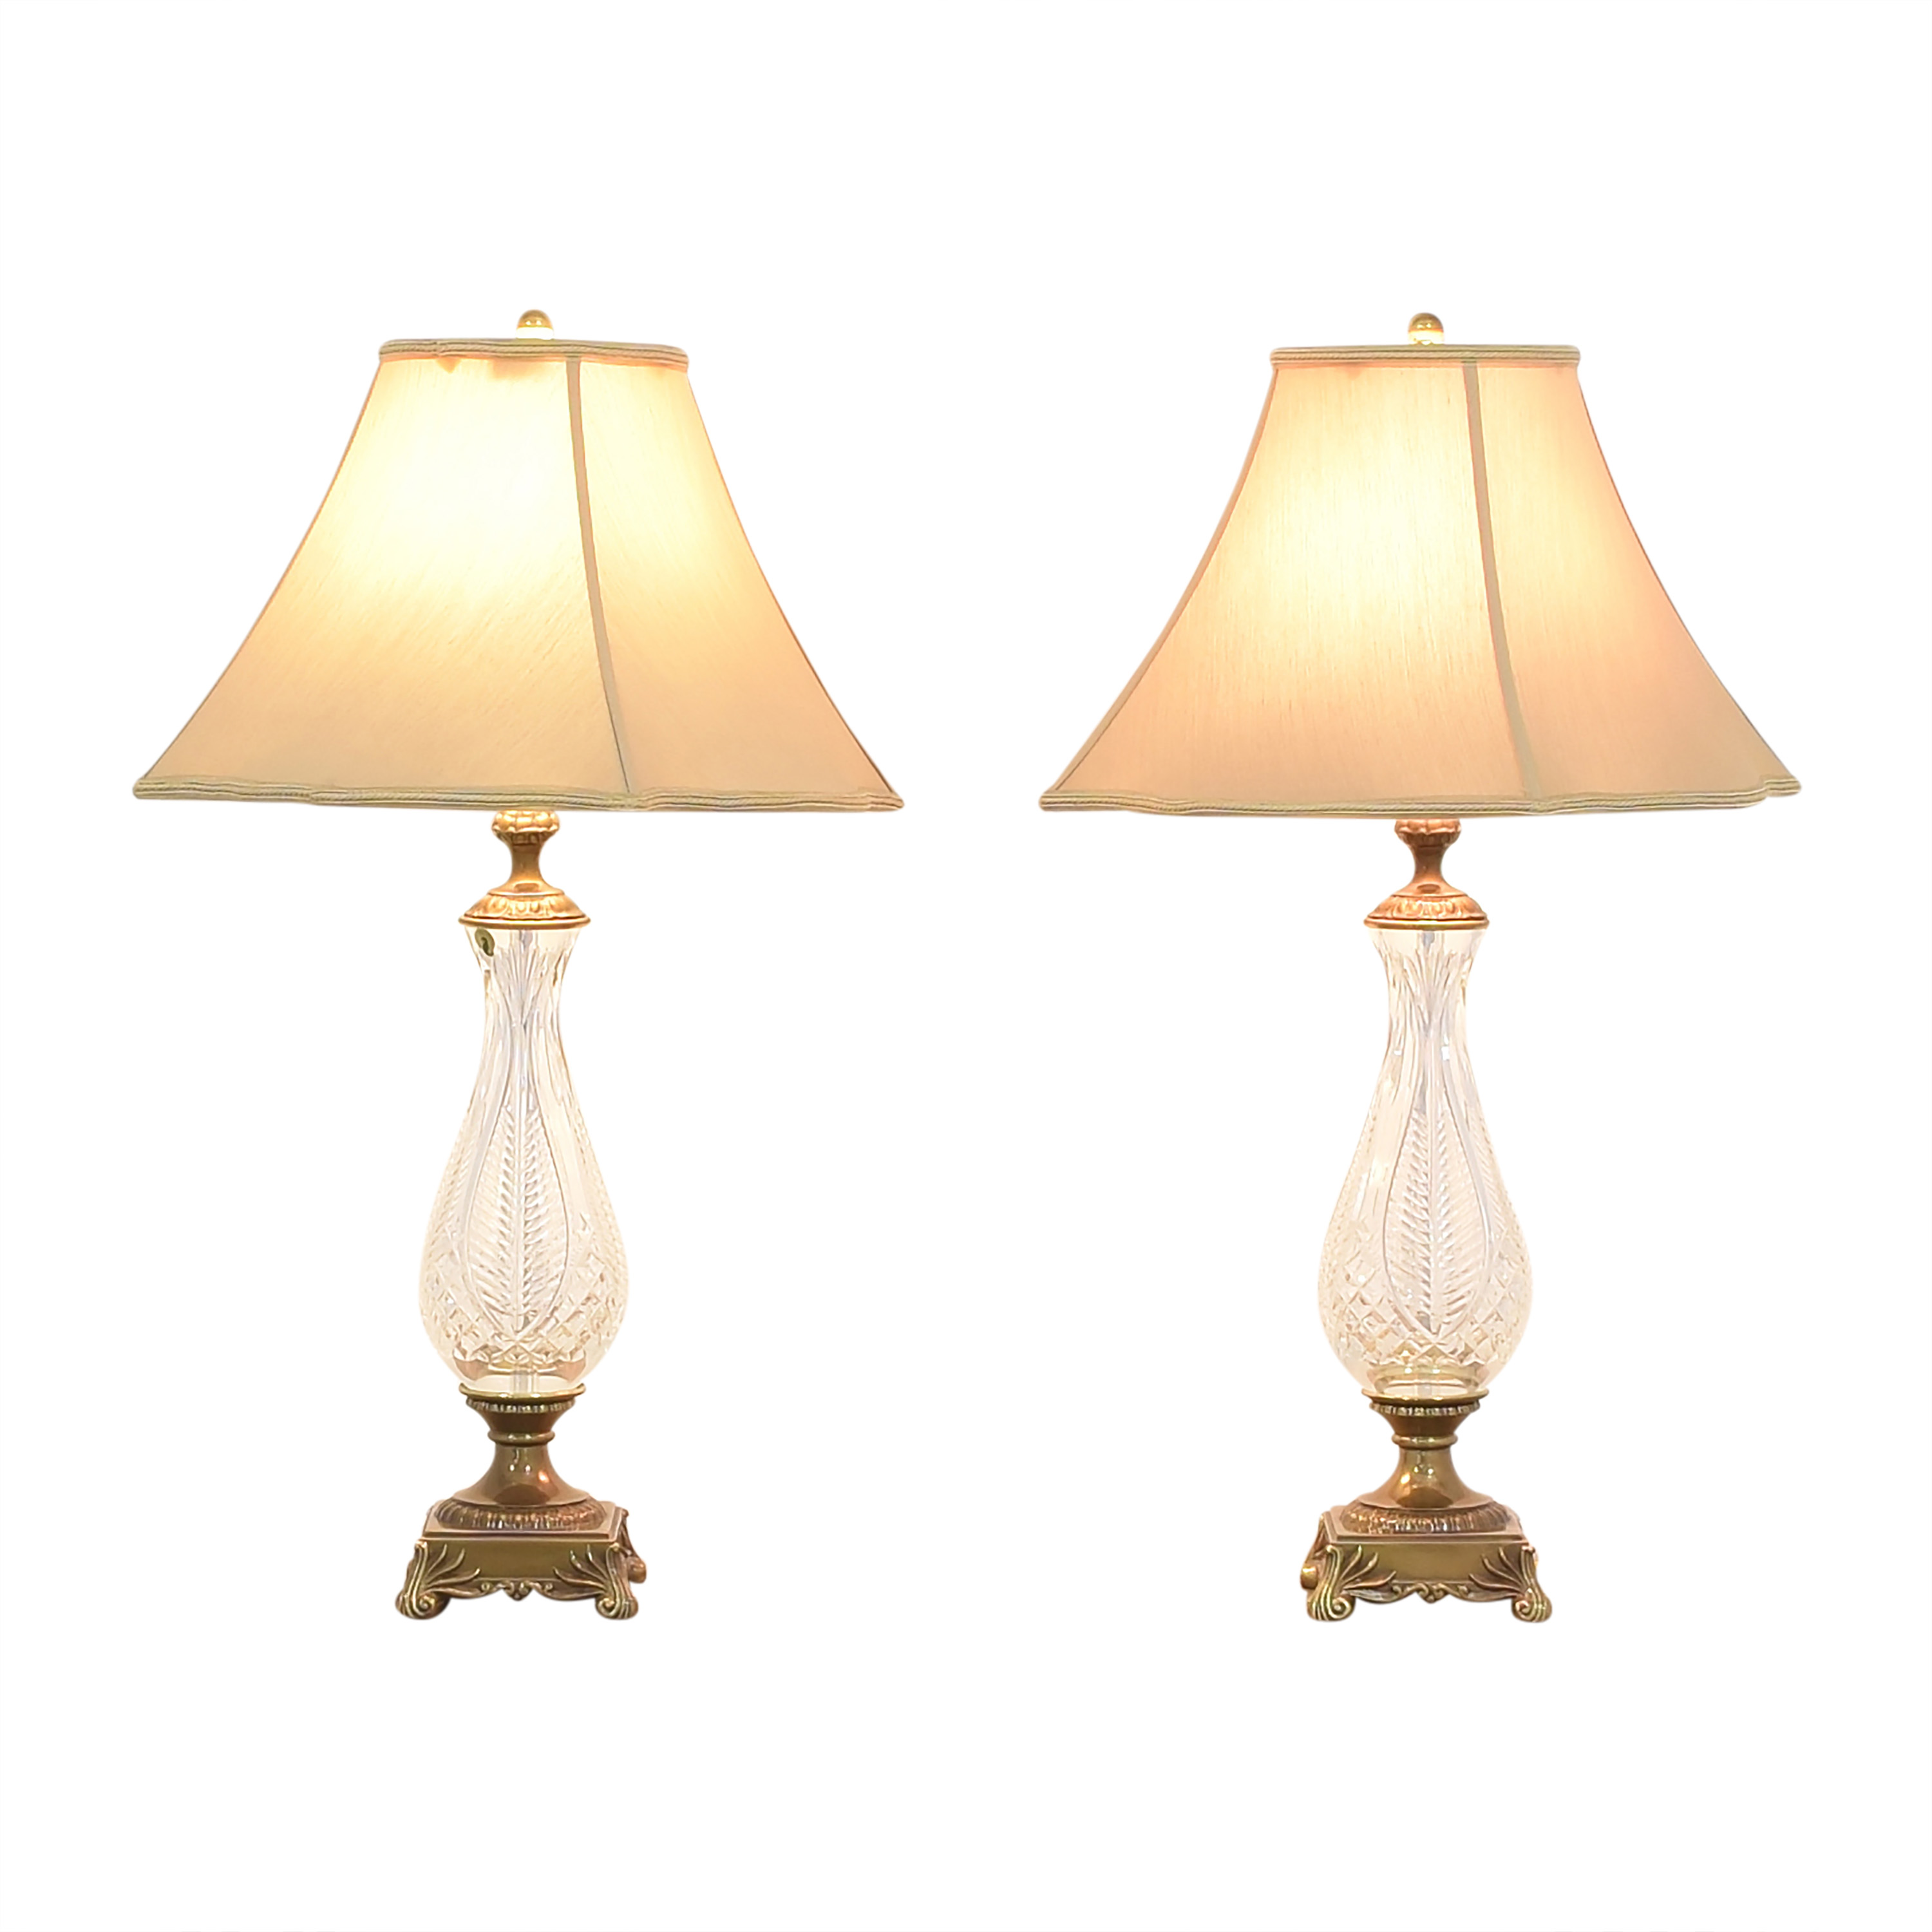 Waterford Waterford Empire Style Table Lamps nj